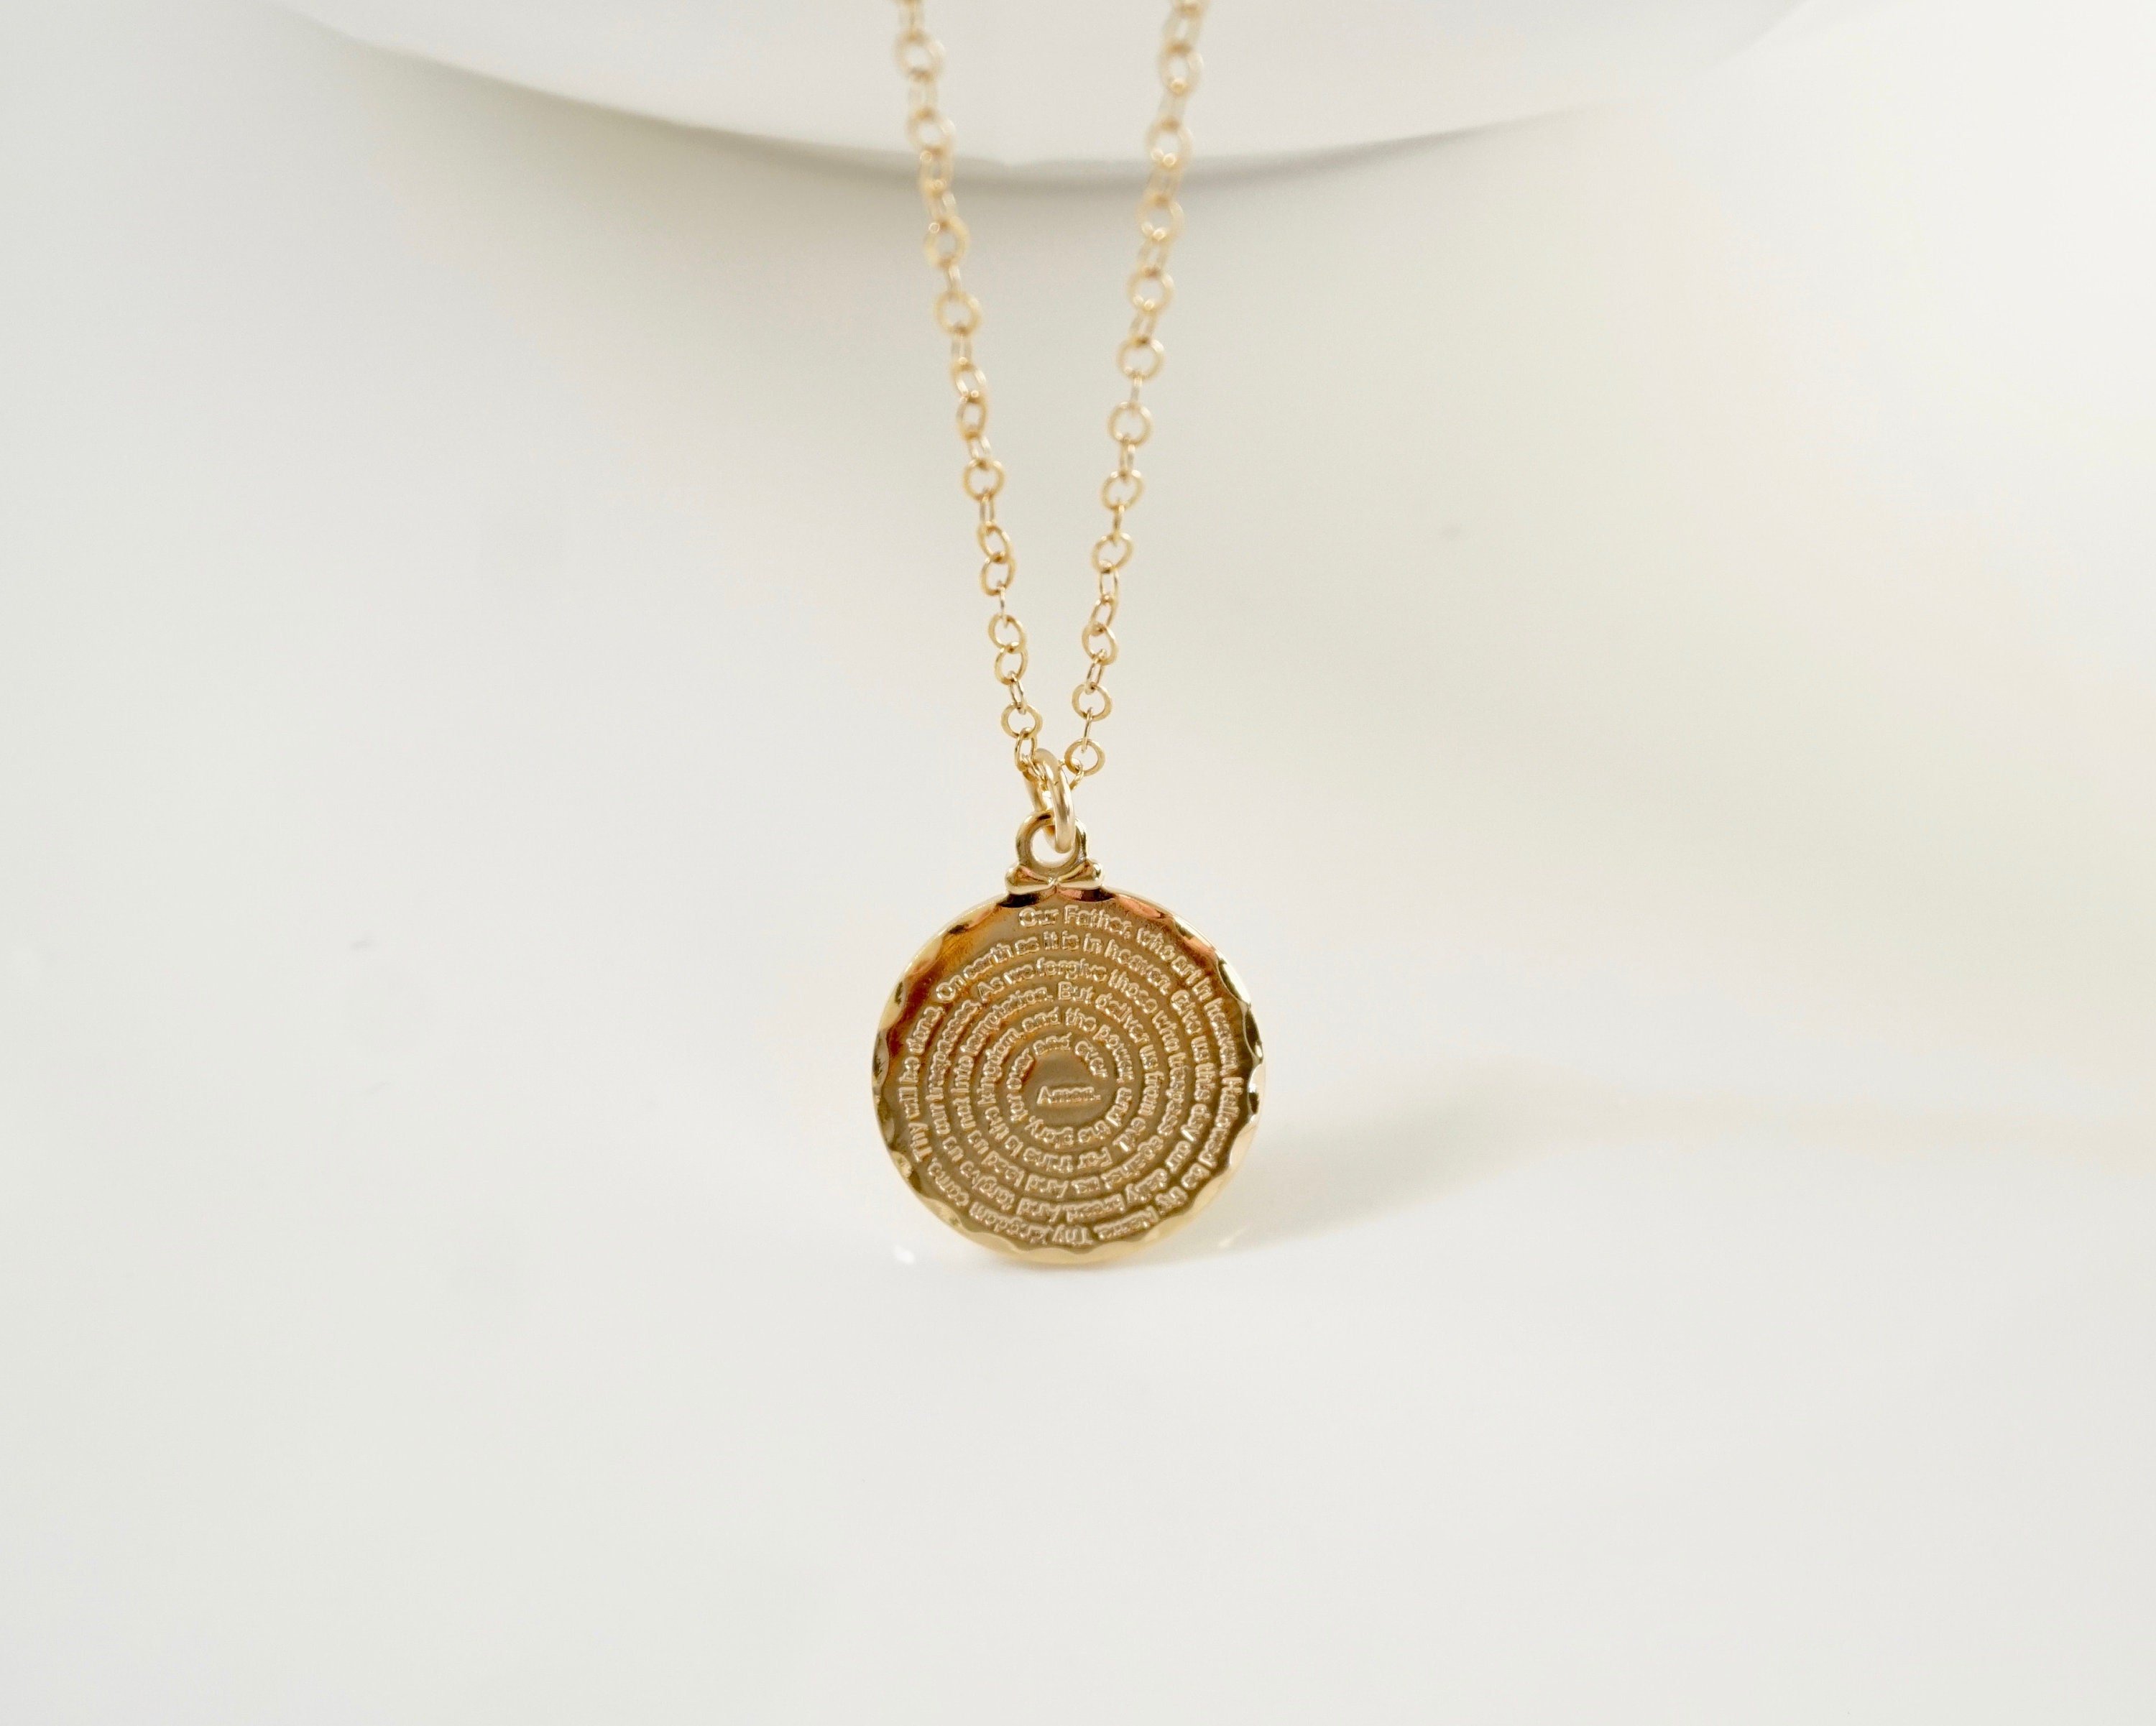 chanel products jewelry pendant medallion necklace enlarged cc the necklaces